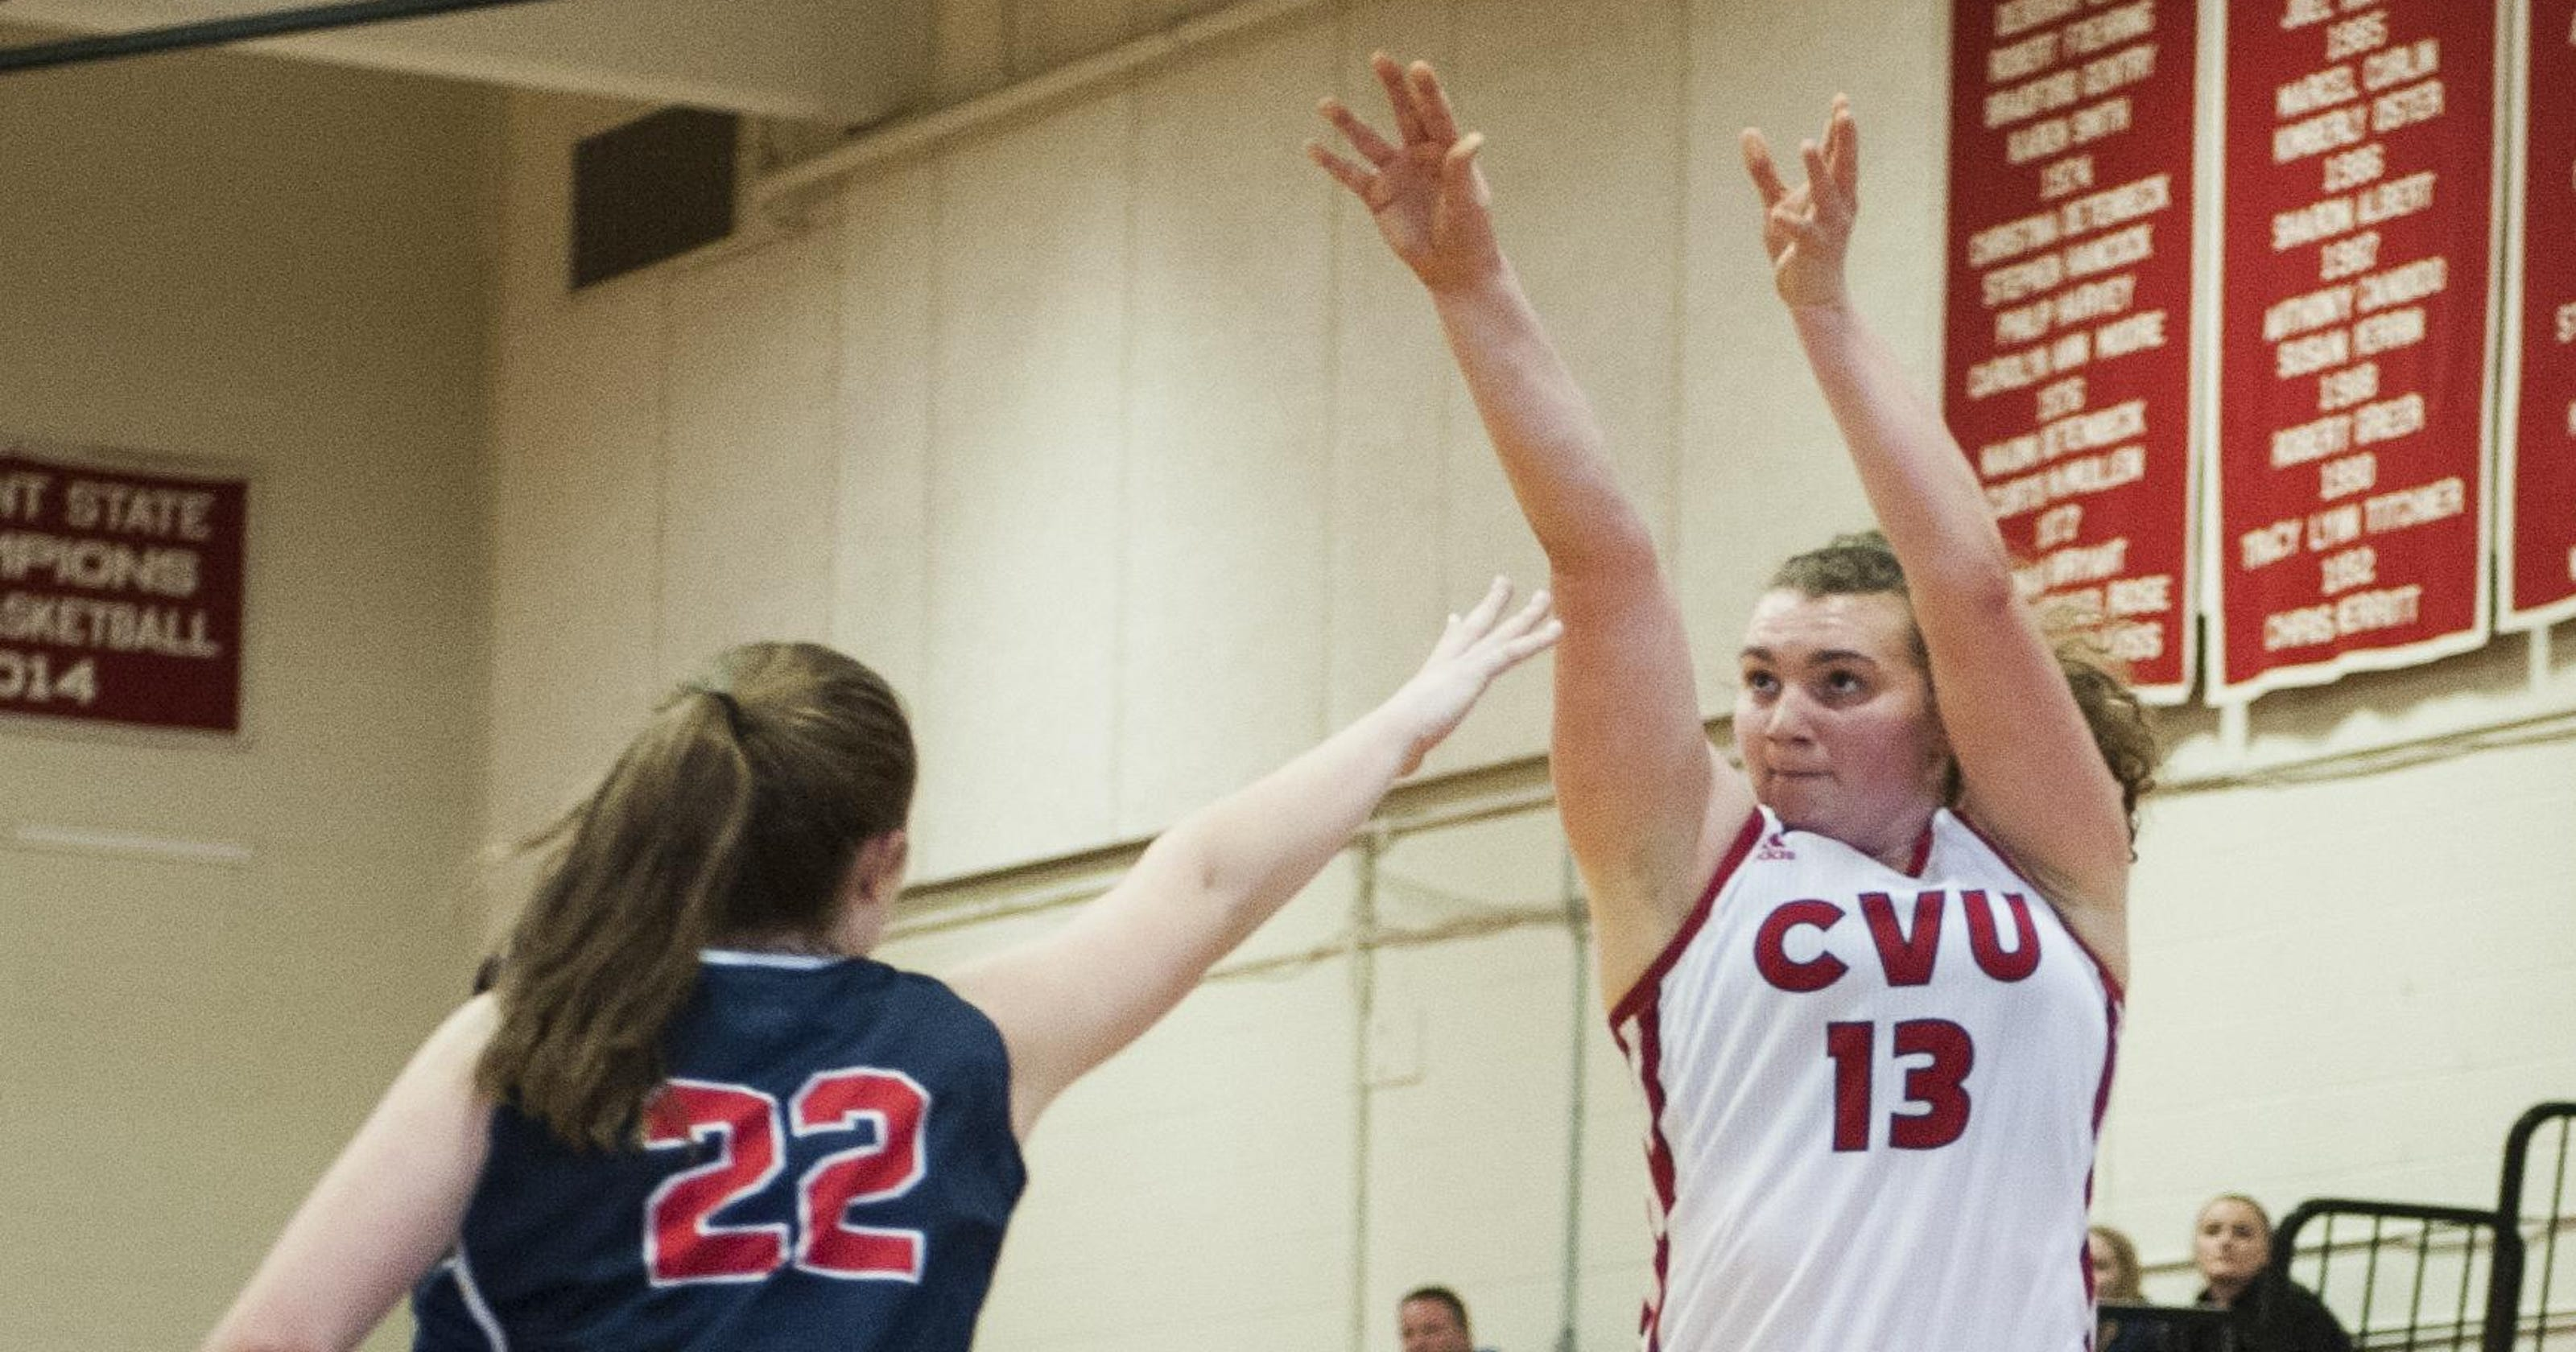 ce8bbefc37d04 CVU pulls away from Mount Anthony